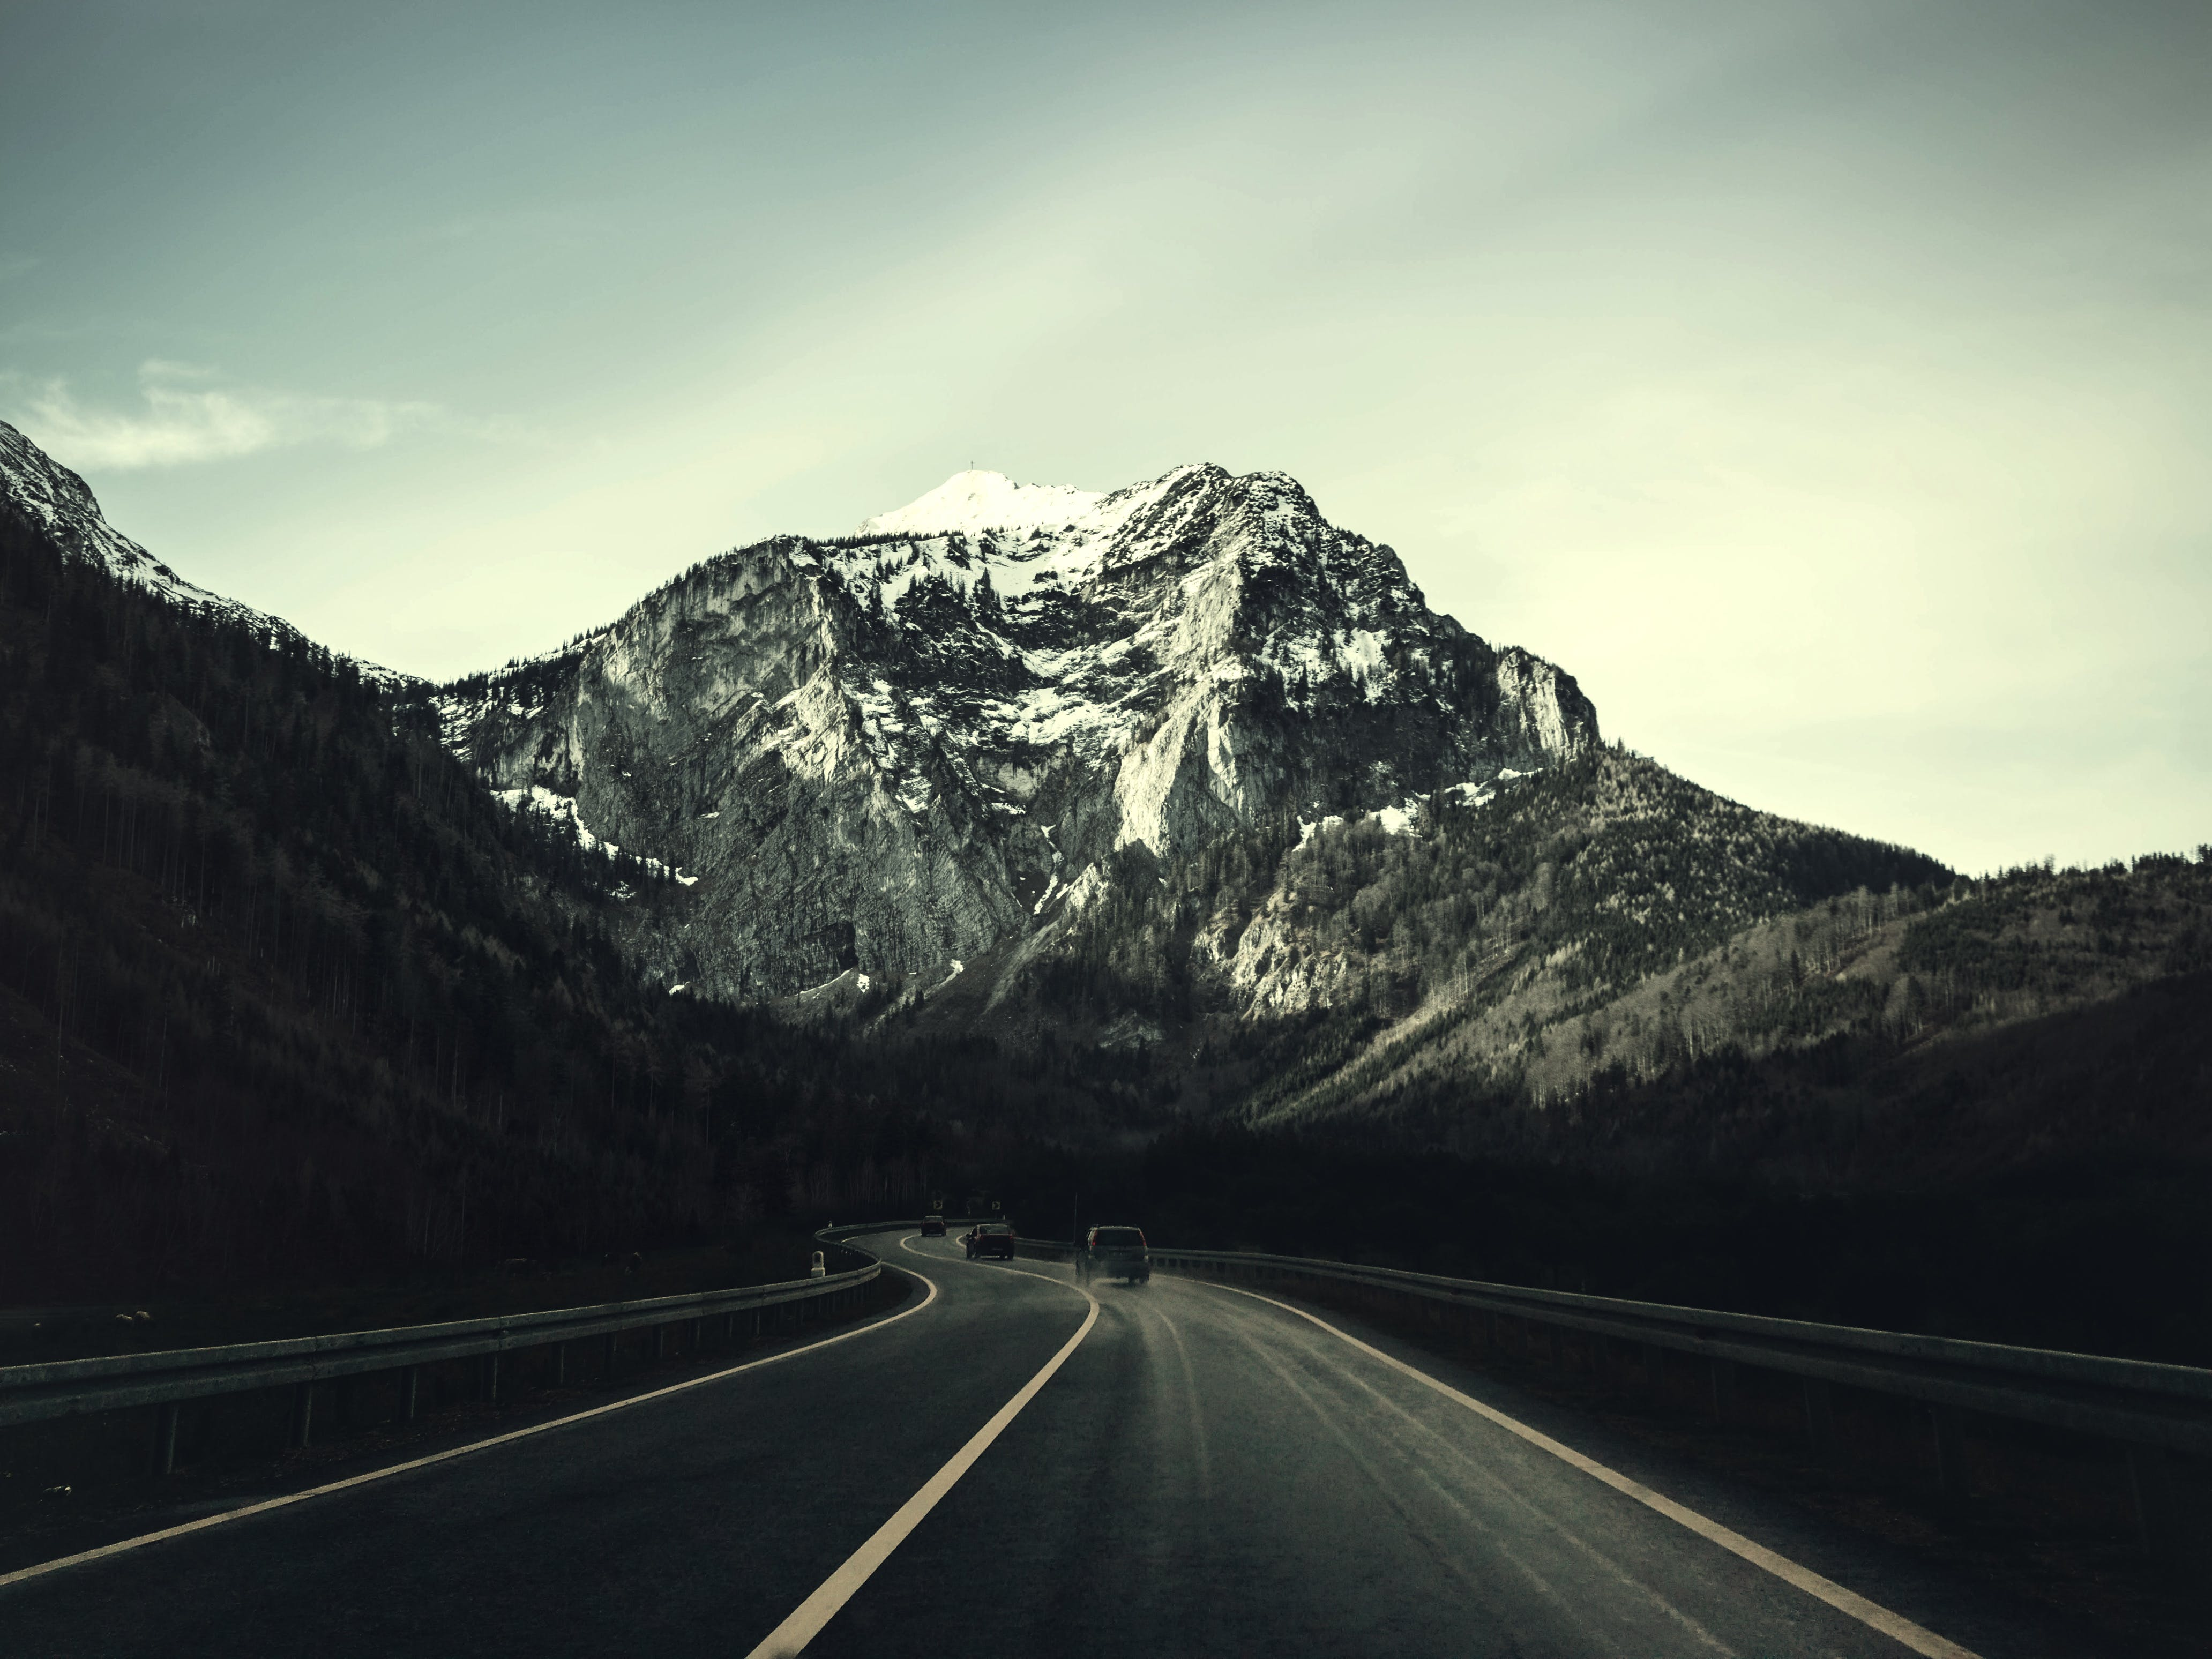 Asphalt Road With Running Vehicle Infront of Mountain Under Gray Sky